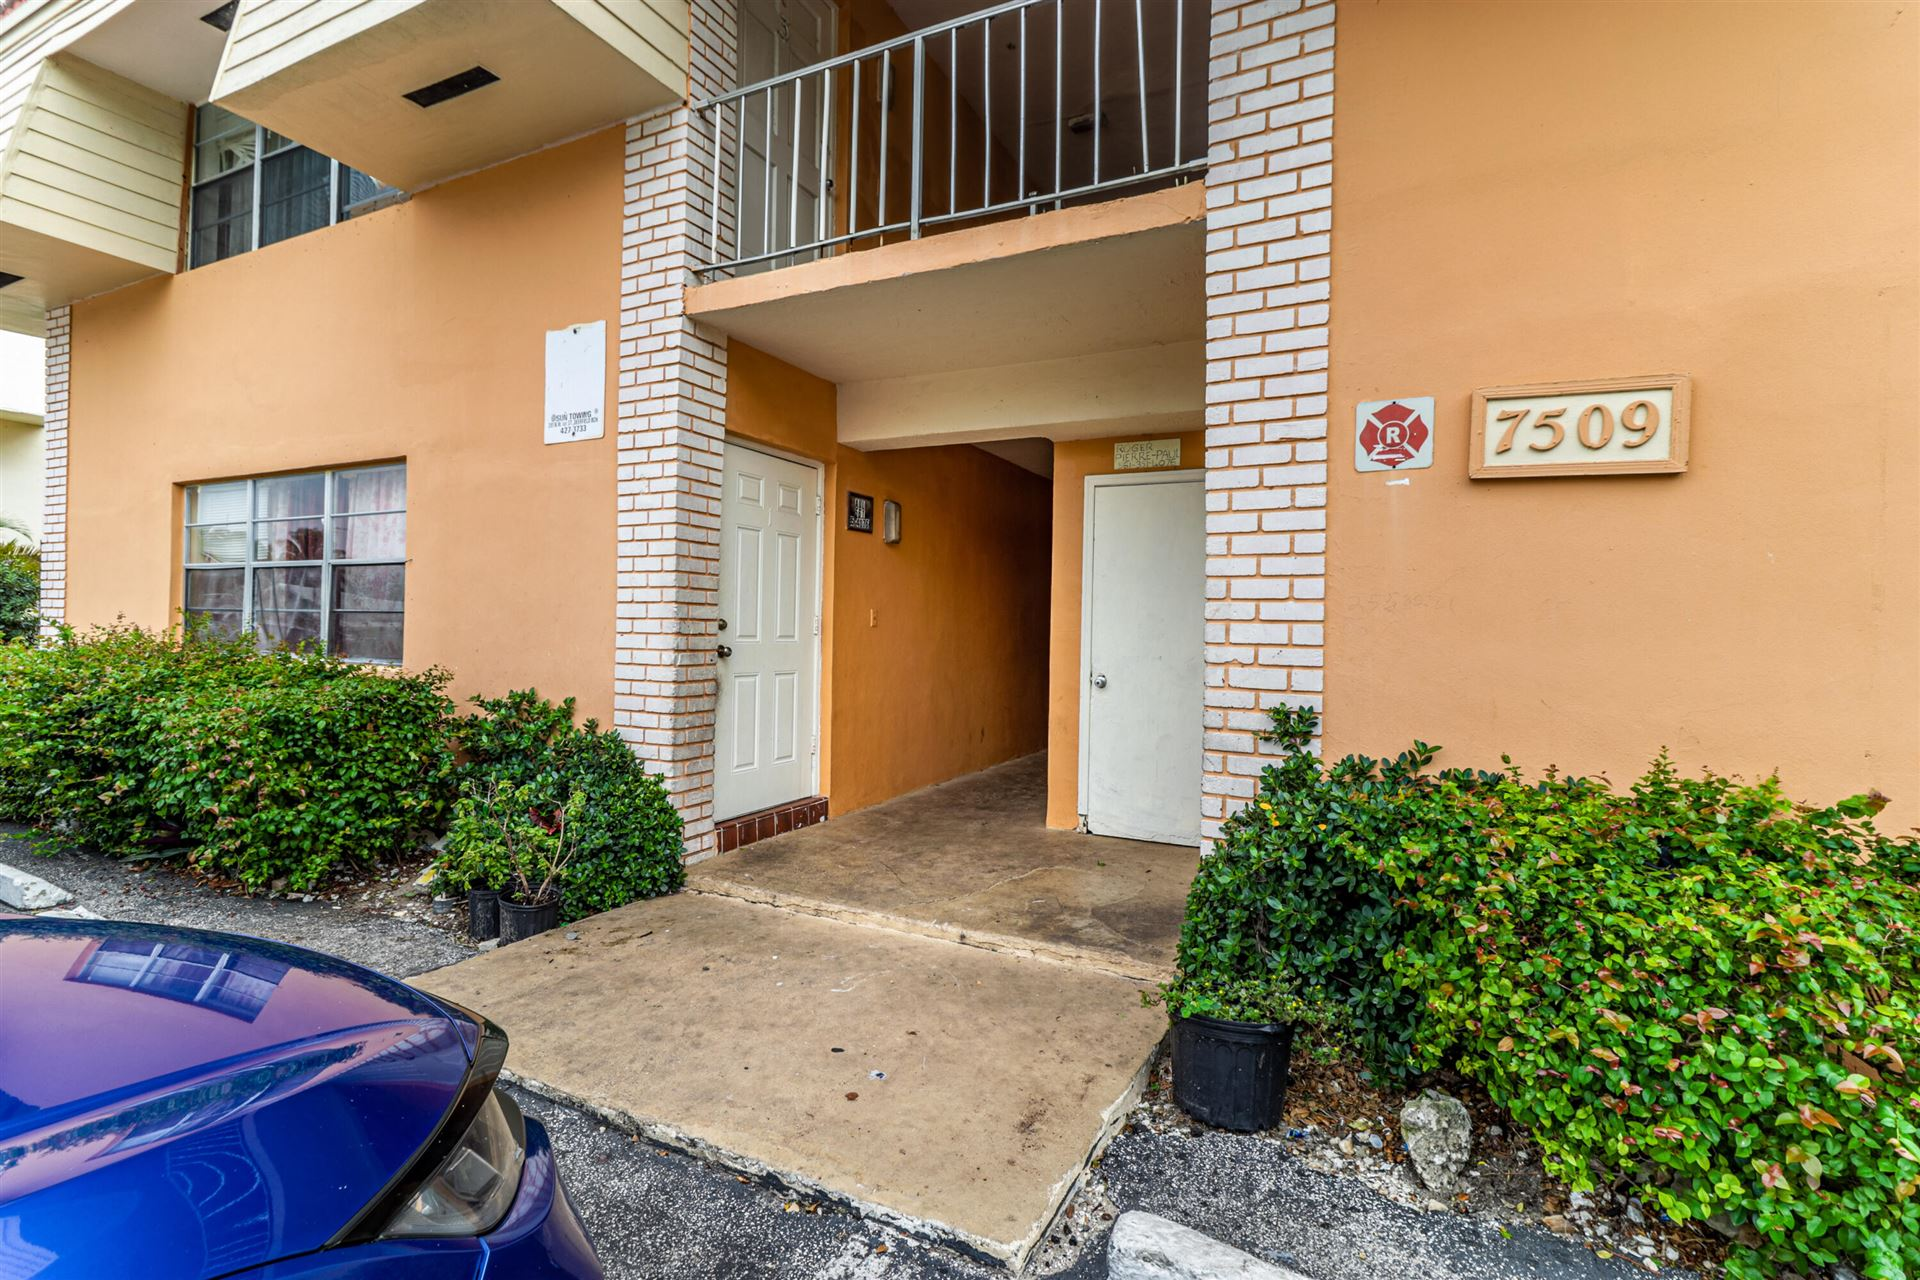 7509 NW 44th Court, Coral Springs, FL 33065 - #: RX-10739103